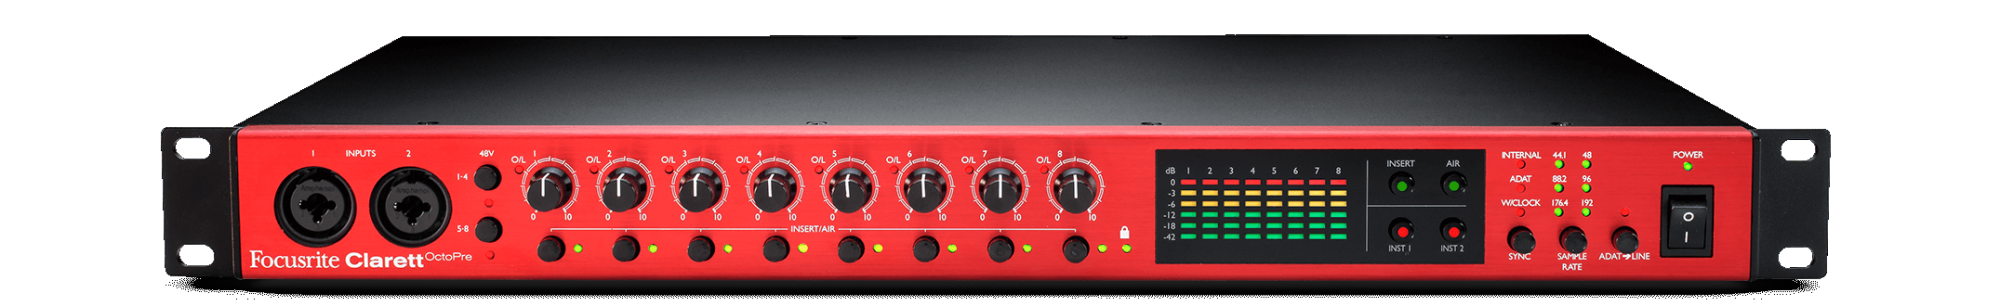 FOCUSRITE CLARETT OCTOPRE EIGHT-CHANNEL MIC PREAMP WITH ADAT CONNECTIVITY